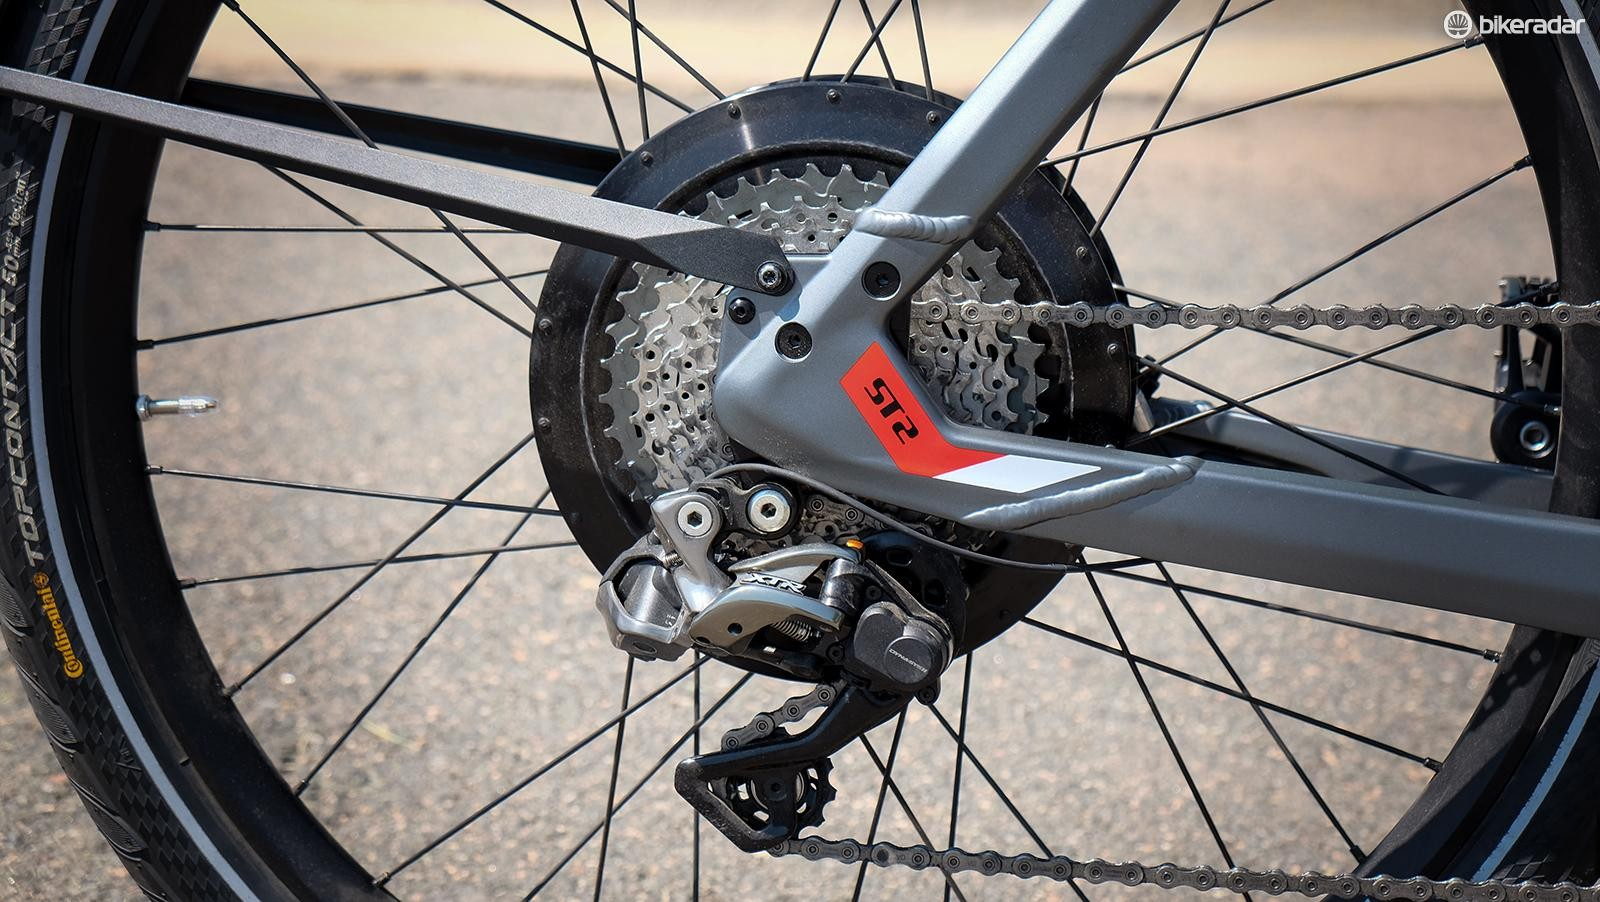 The ST2 S uses Shimano's premium XTR Di2 electronic shifting system